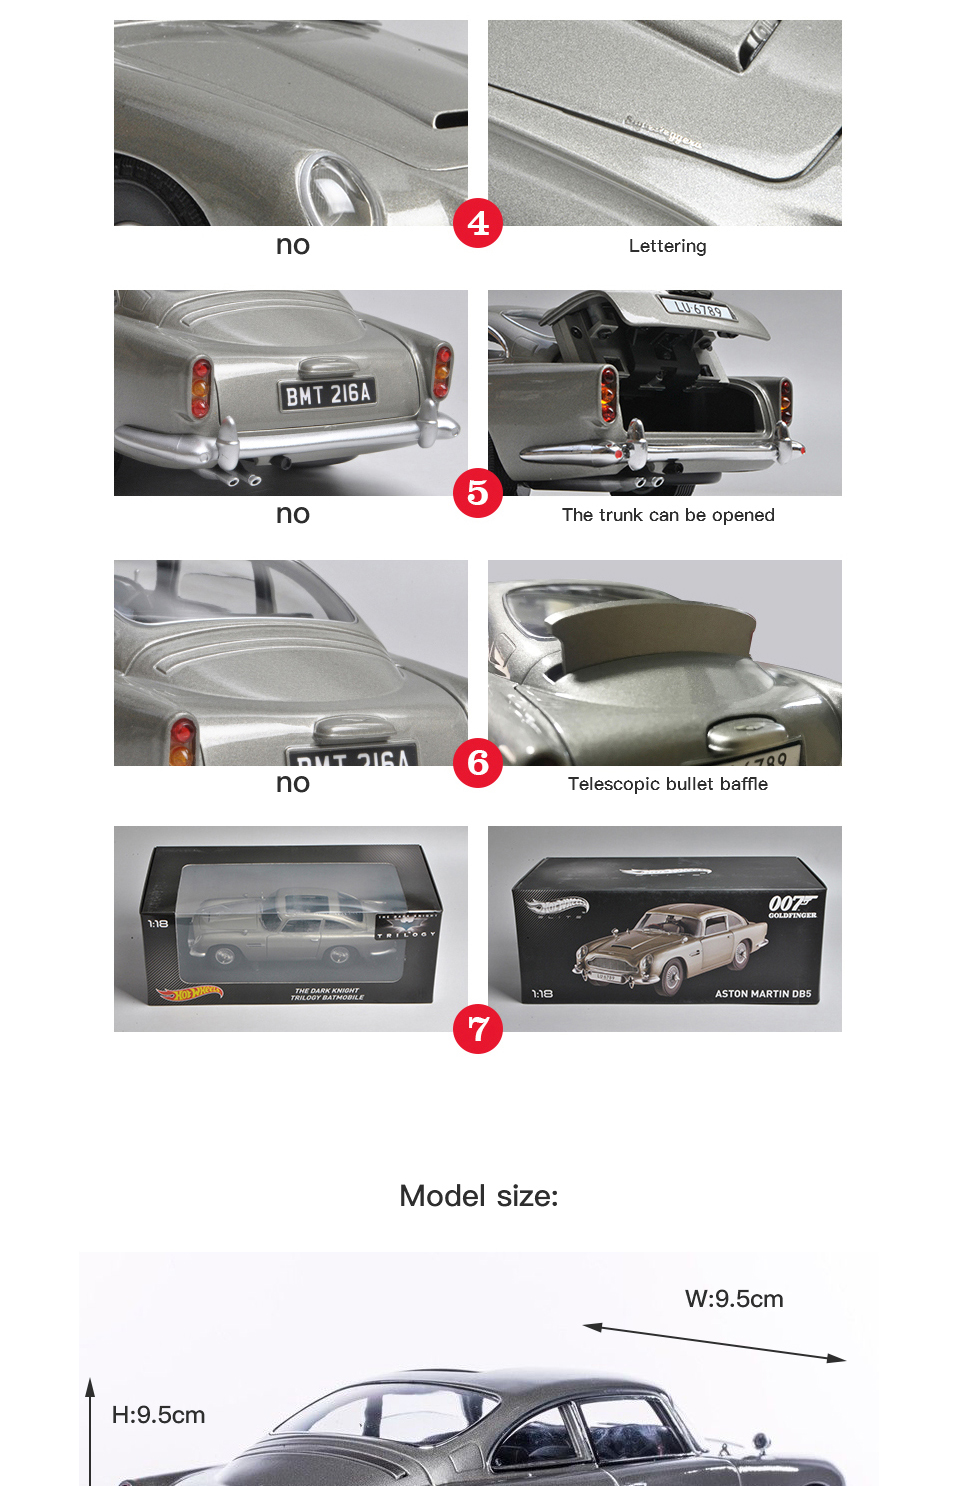 1 18 scale car models 2-4 Years james bond 007 collectables Aston Matin DB5 Diecasts & Toy Vehicles Model Toys For Gifts (5)